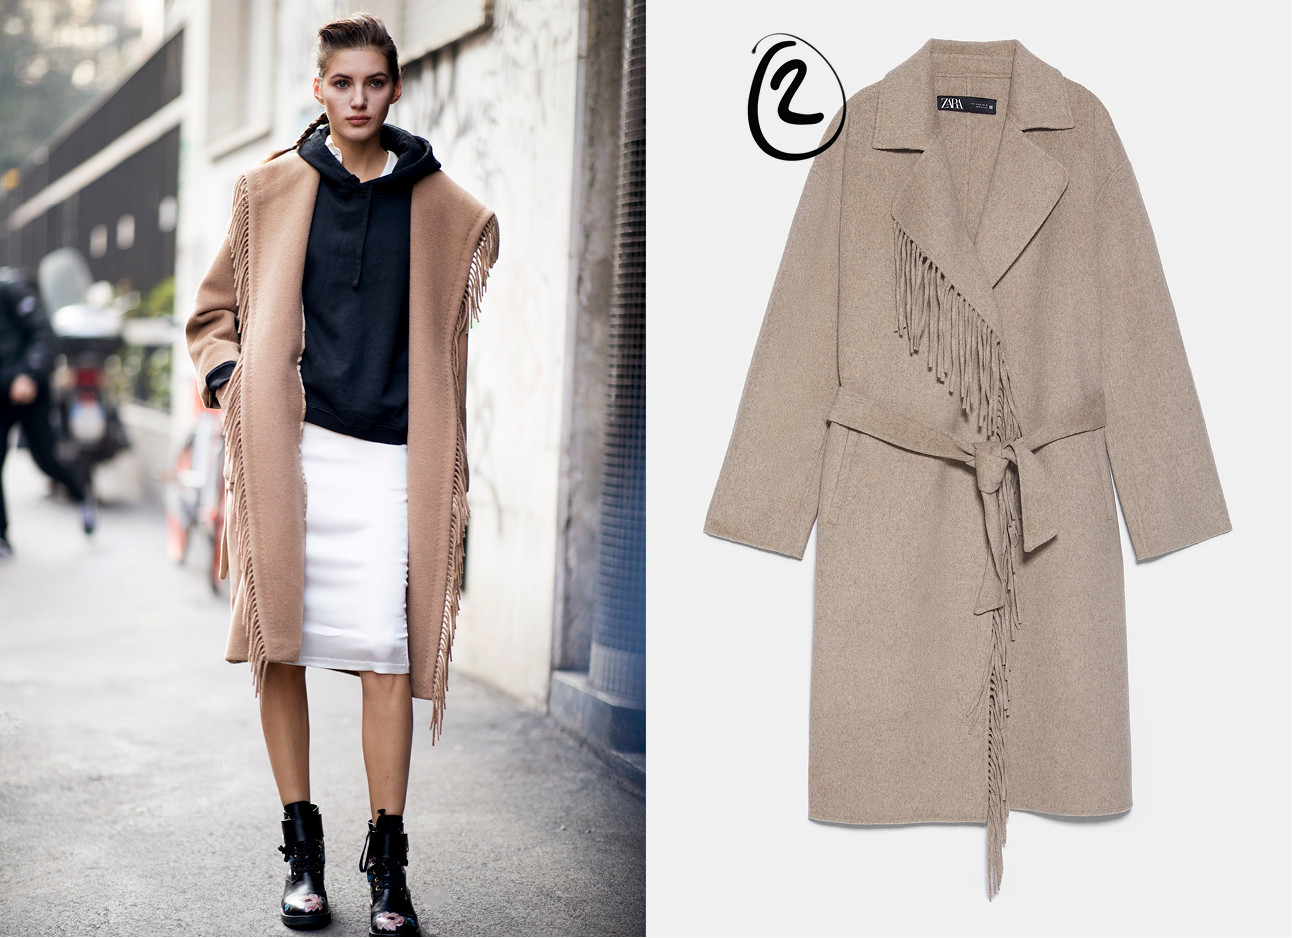 een model in een bruine trench coat